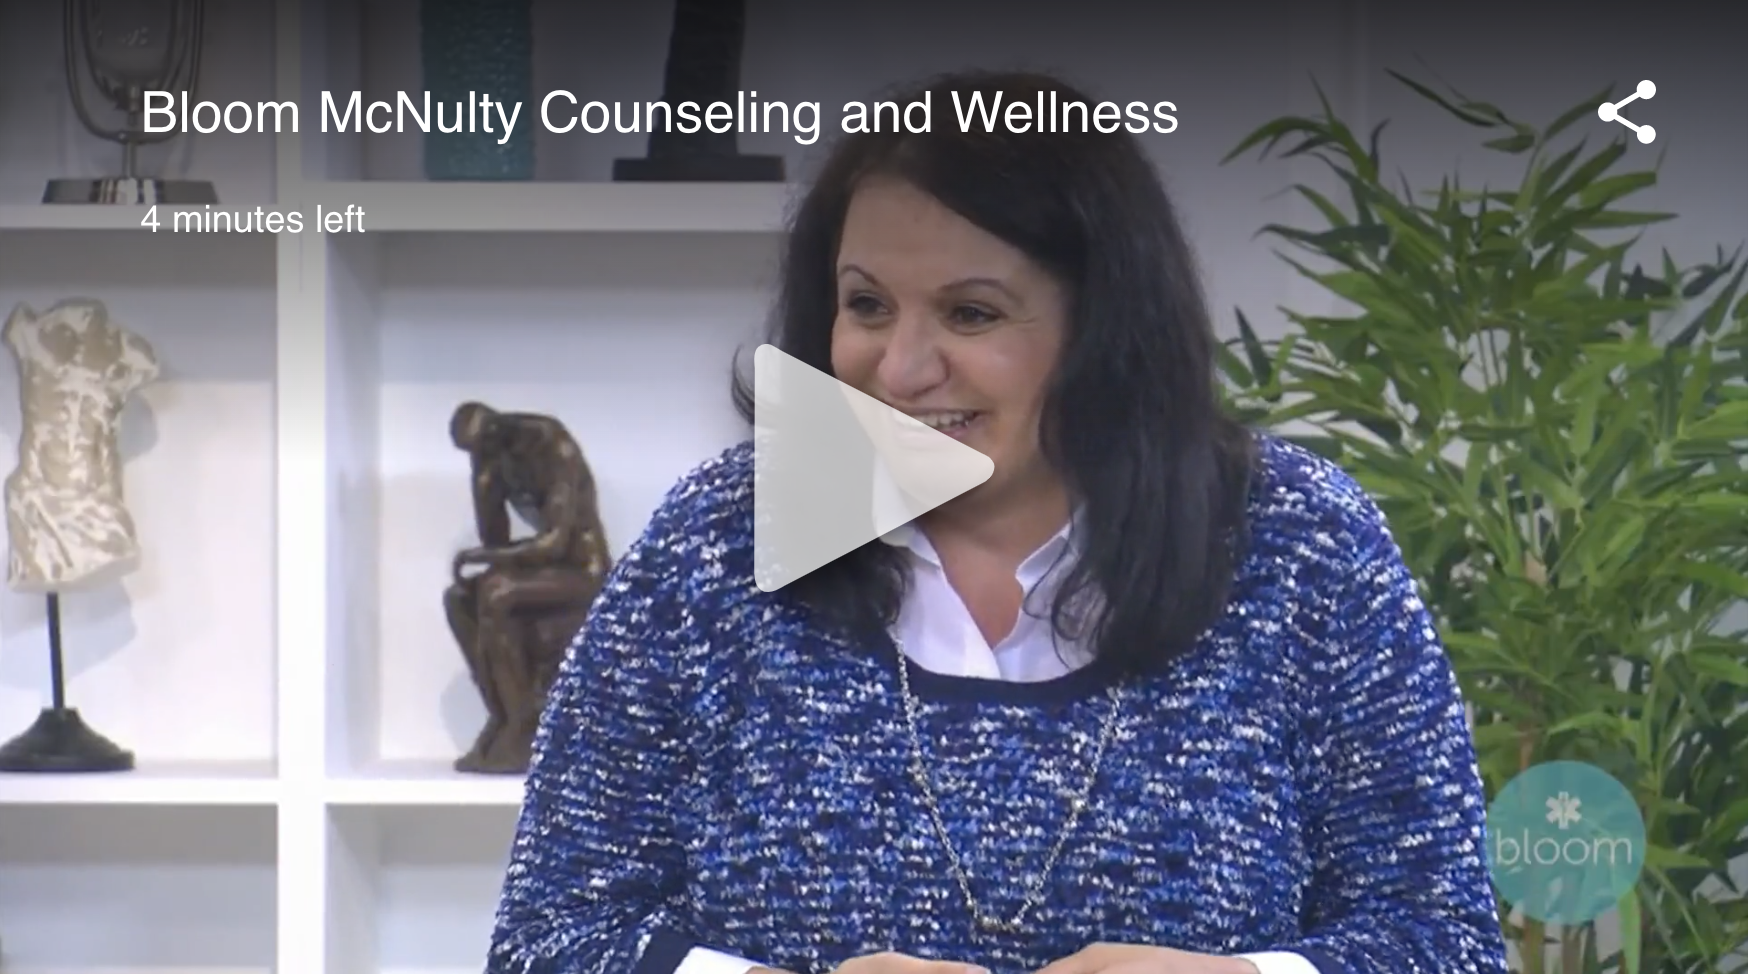 bloom mcnulty counseling and wellness